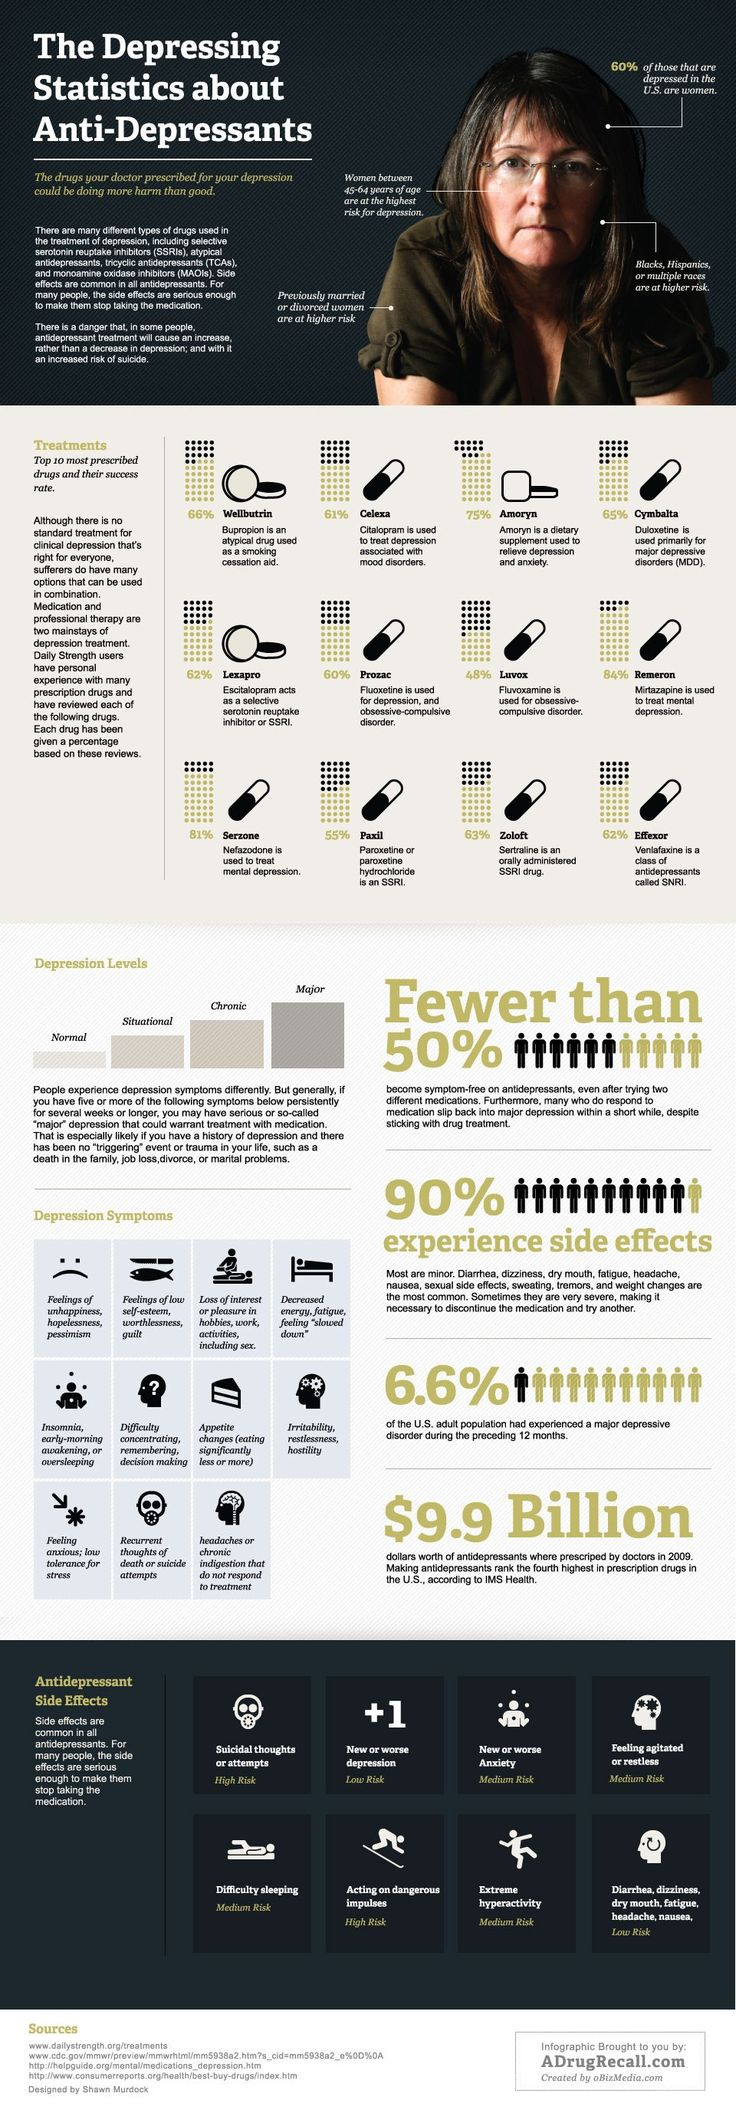 Depression and anti-depressants. Note that some points in this infographic are refuted at this post: http://psychcentral.com/blog/archives/2011/06/29/an-epidemic-of-bad-infographics-depression/